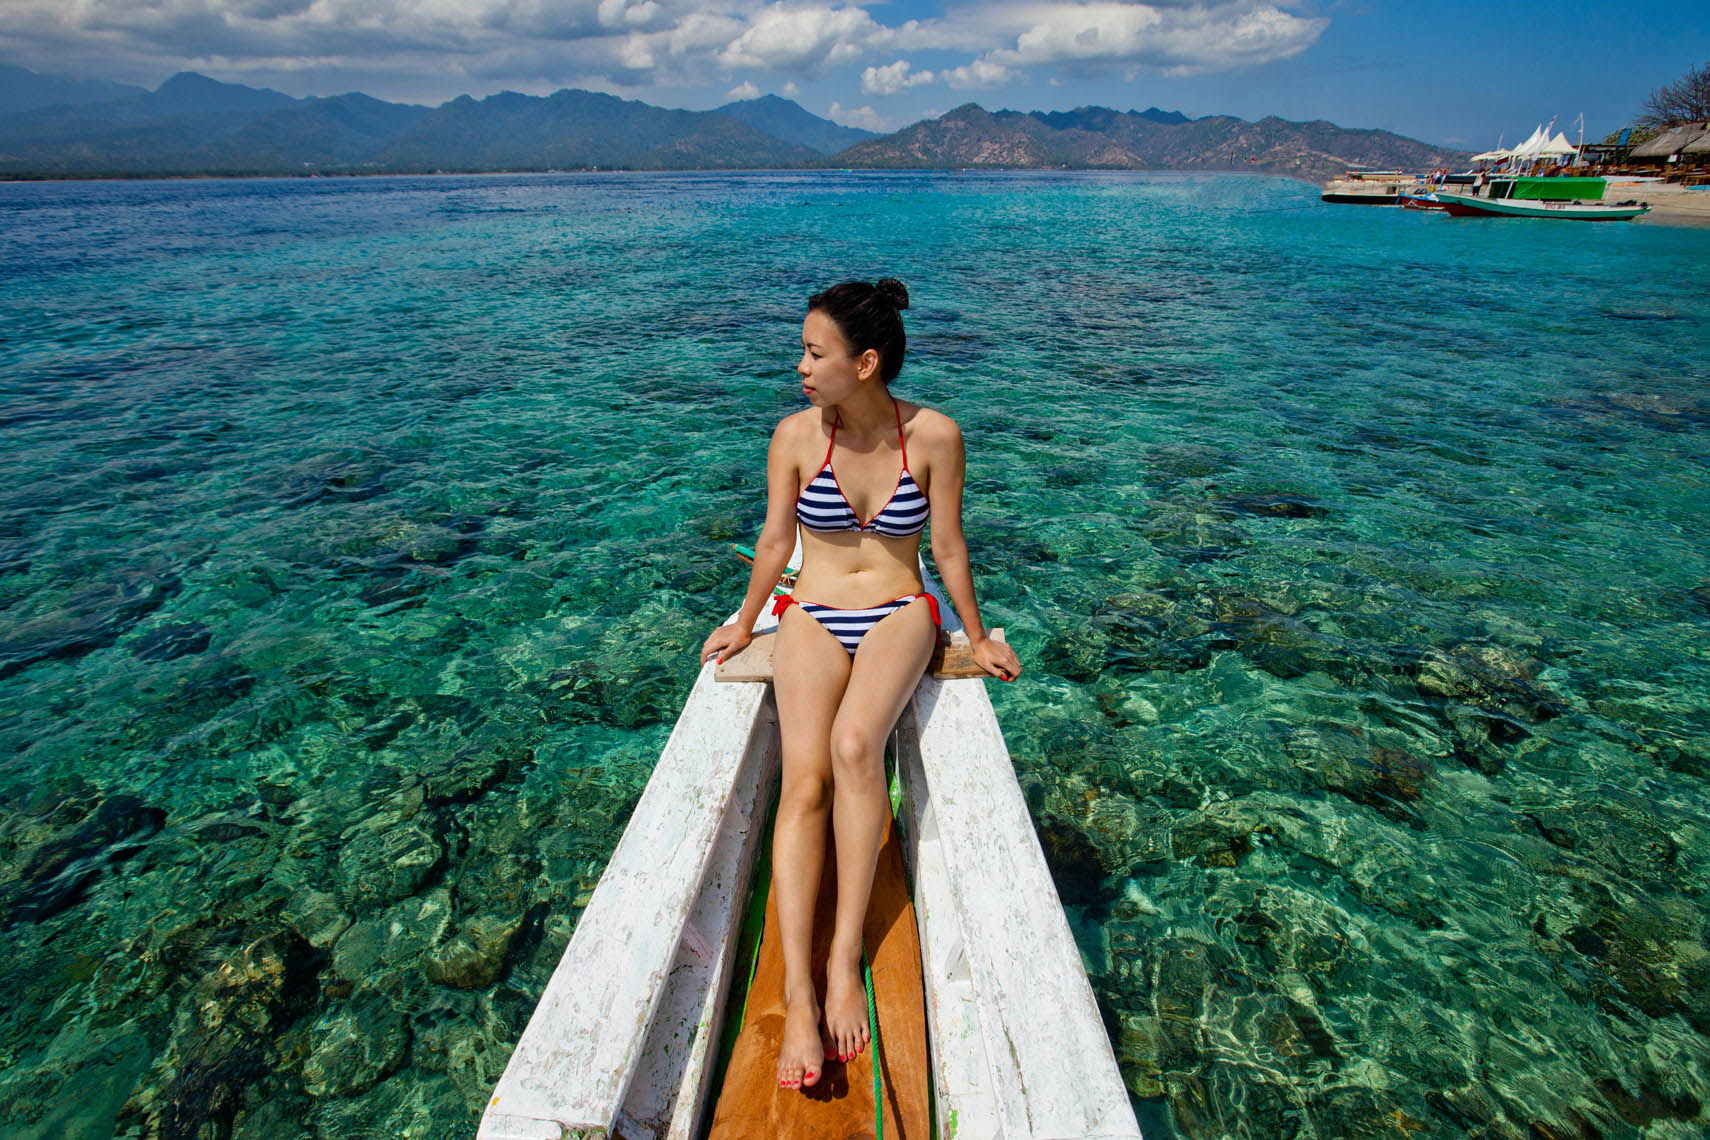 lra_20140810_silkair_yogyakarta_lombok_edited_300DPI_RGB-9722_lombok_giliair_girl_on_boat6